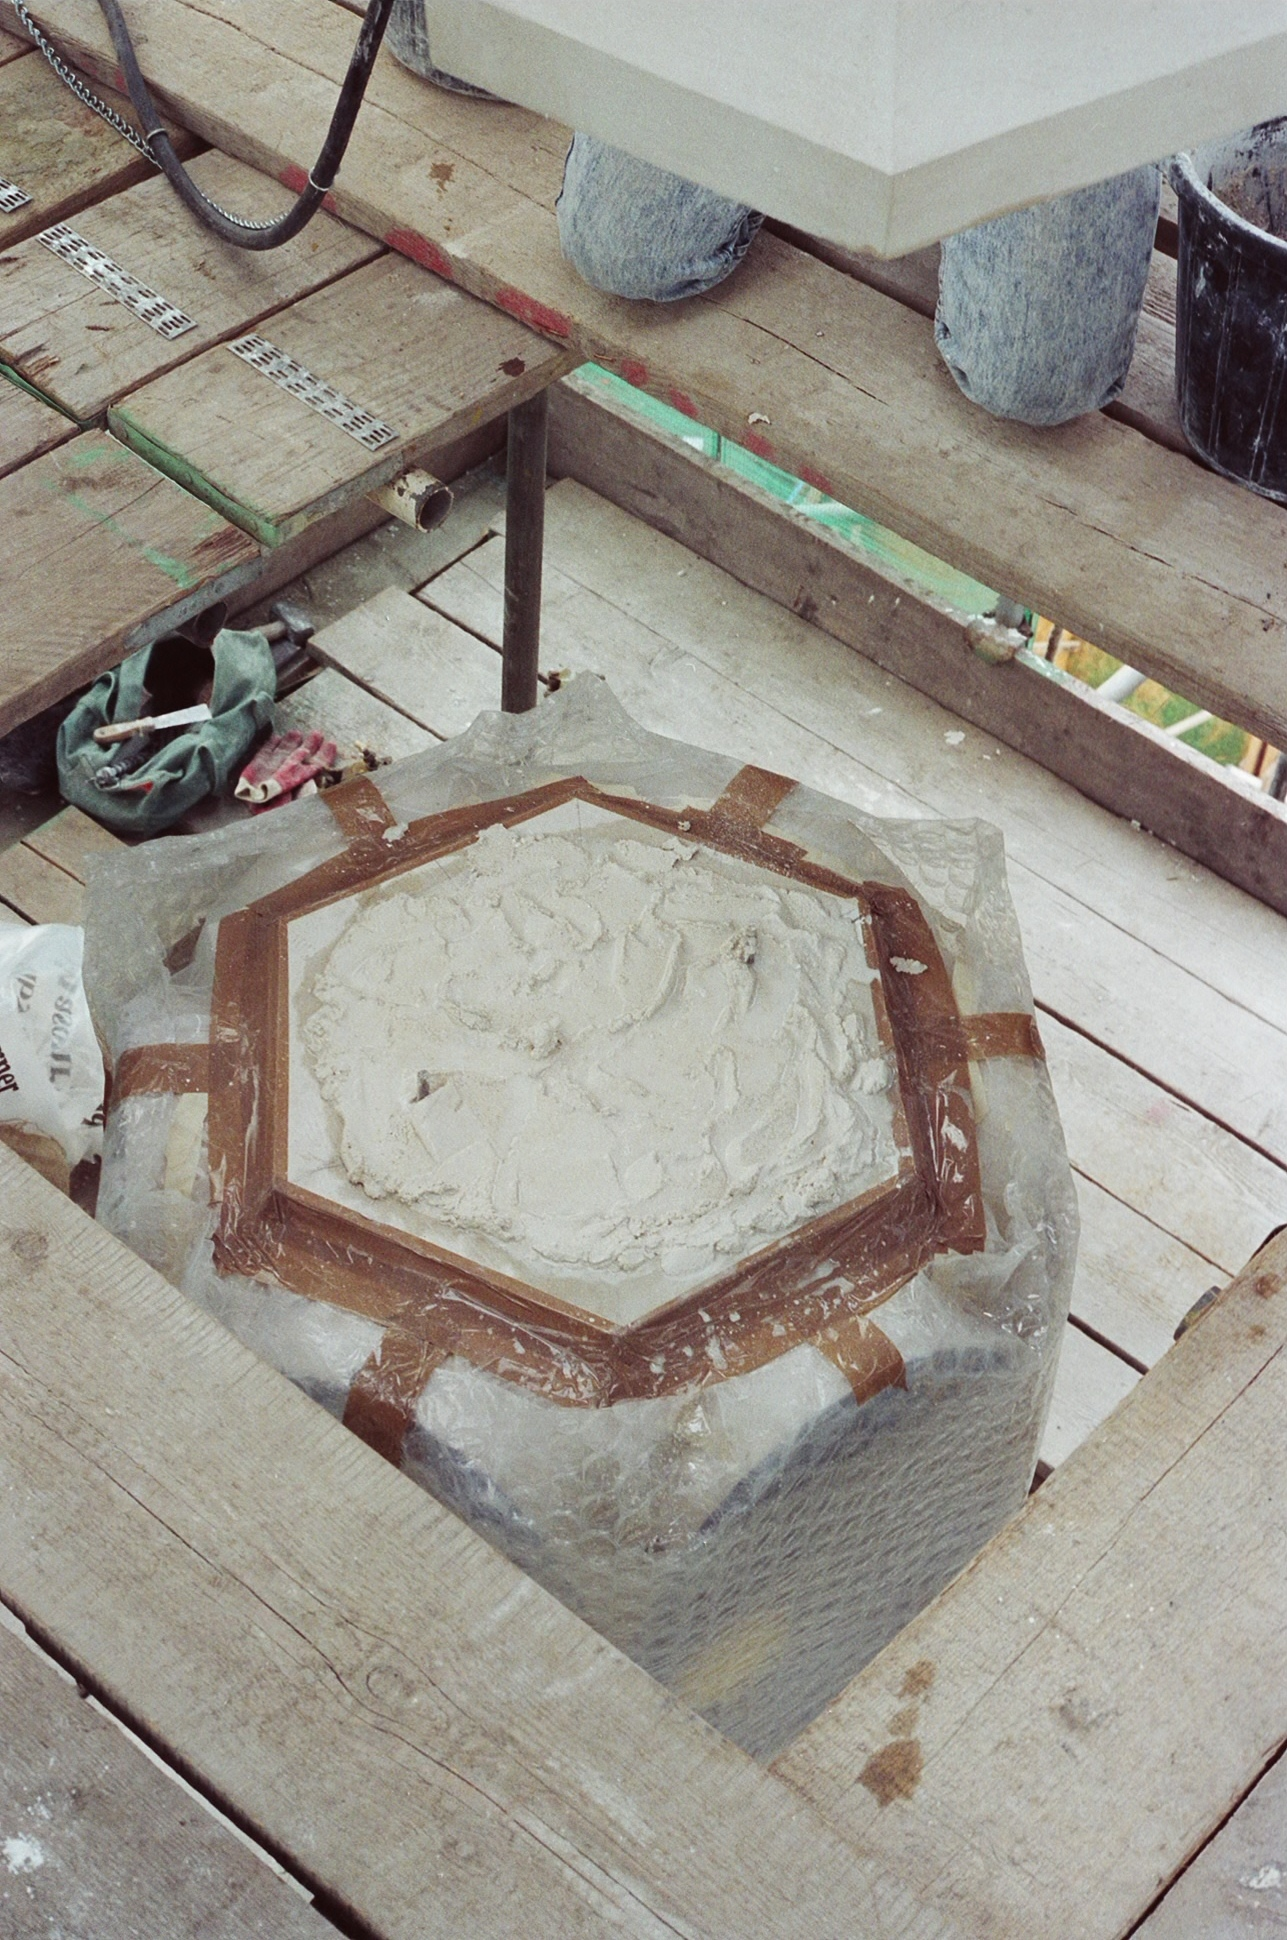 Top of Dialstone ready for Vase stone.